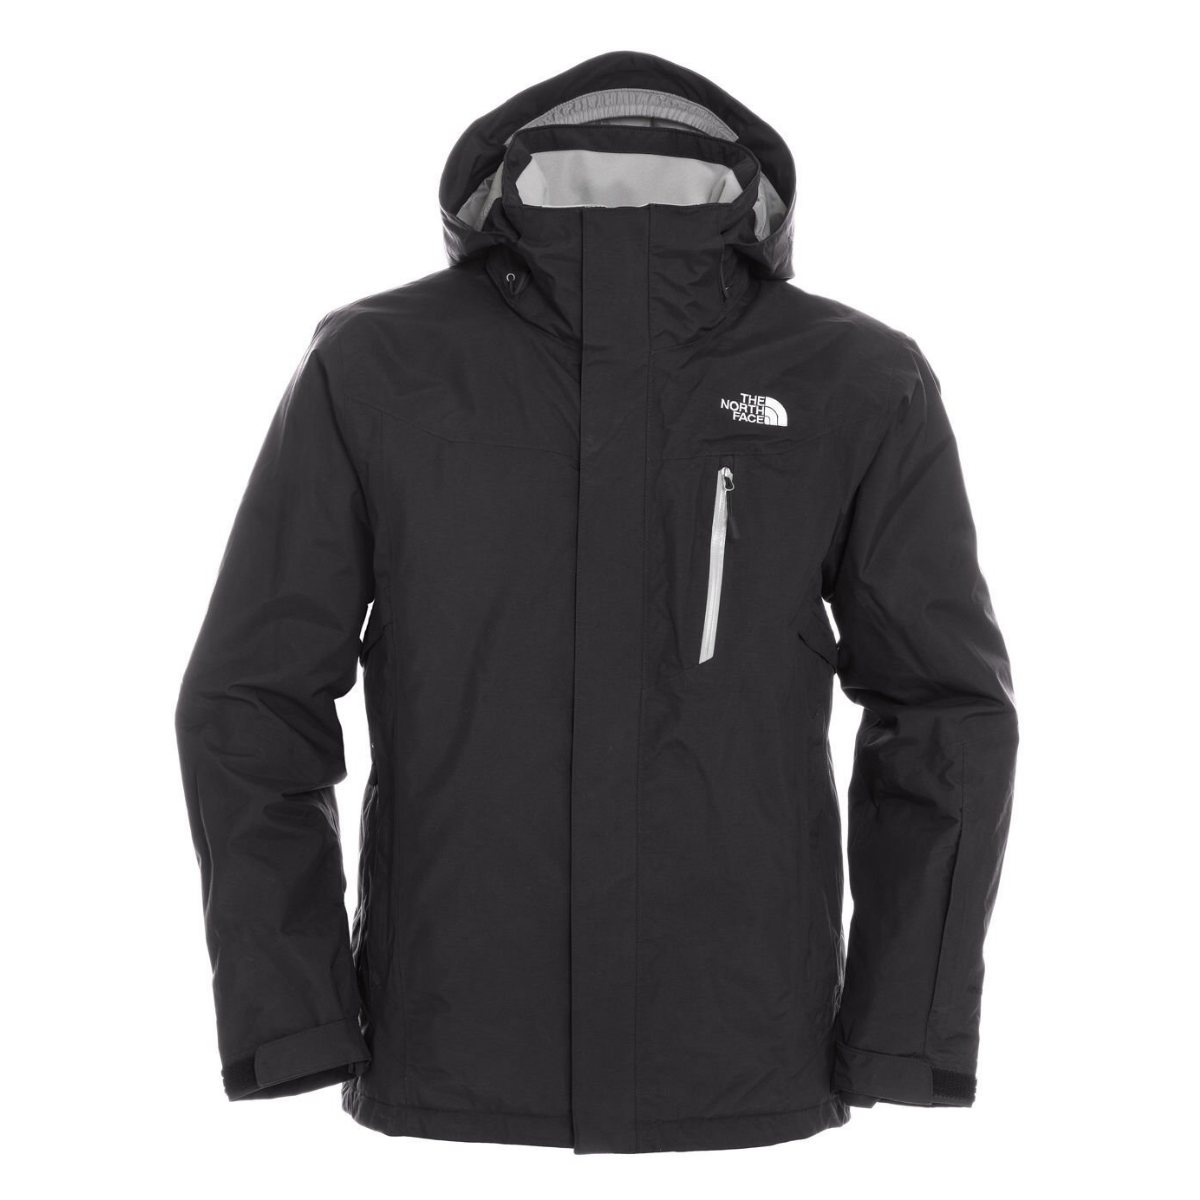 the north face peskara jacket jacke windjacke regenjacke winter herren schwarz ebay. Black Bedroom Furniture Sets. Home Design Ideas